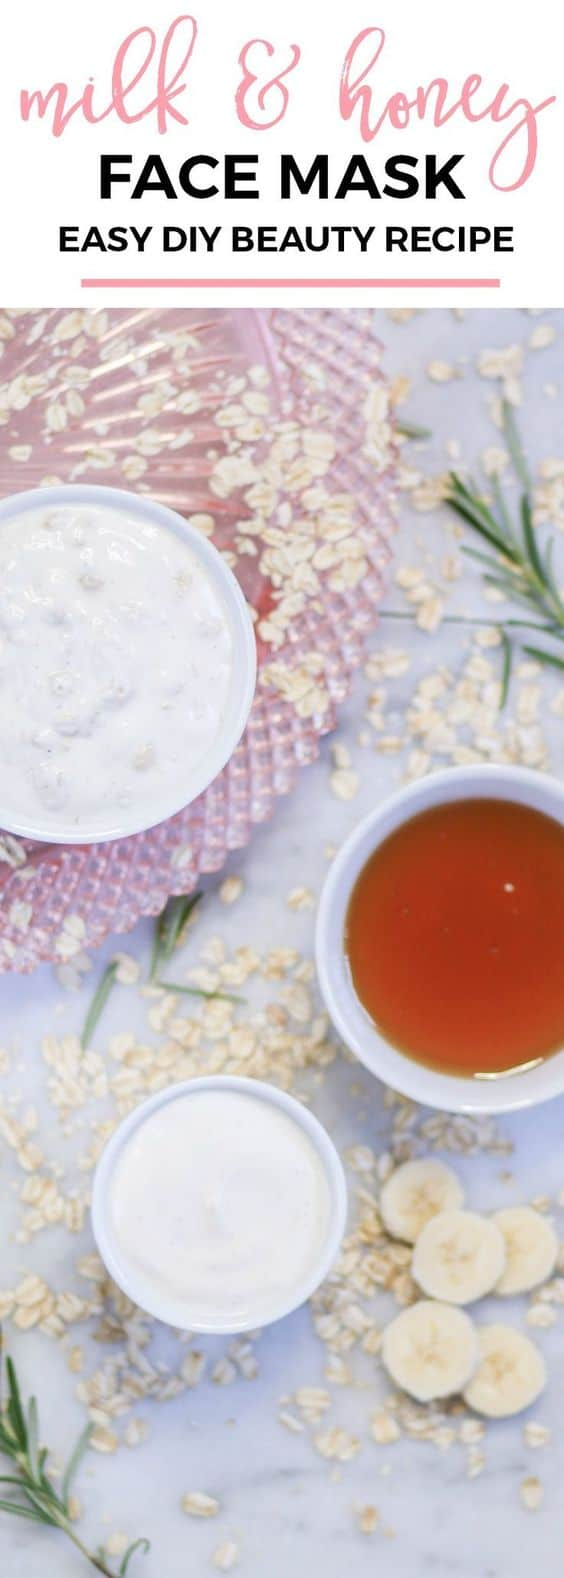 Aside from its moisturizing ability, this DIY moisturizing face mask works great as an exfoliant. The powers of yogurt, banana, and honey are combined with oatmeal for a deep clean effect.